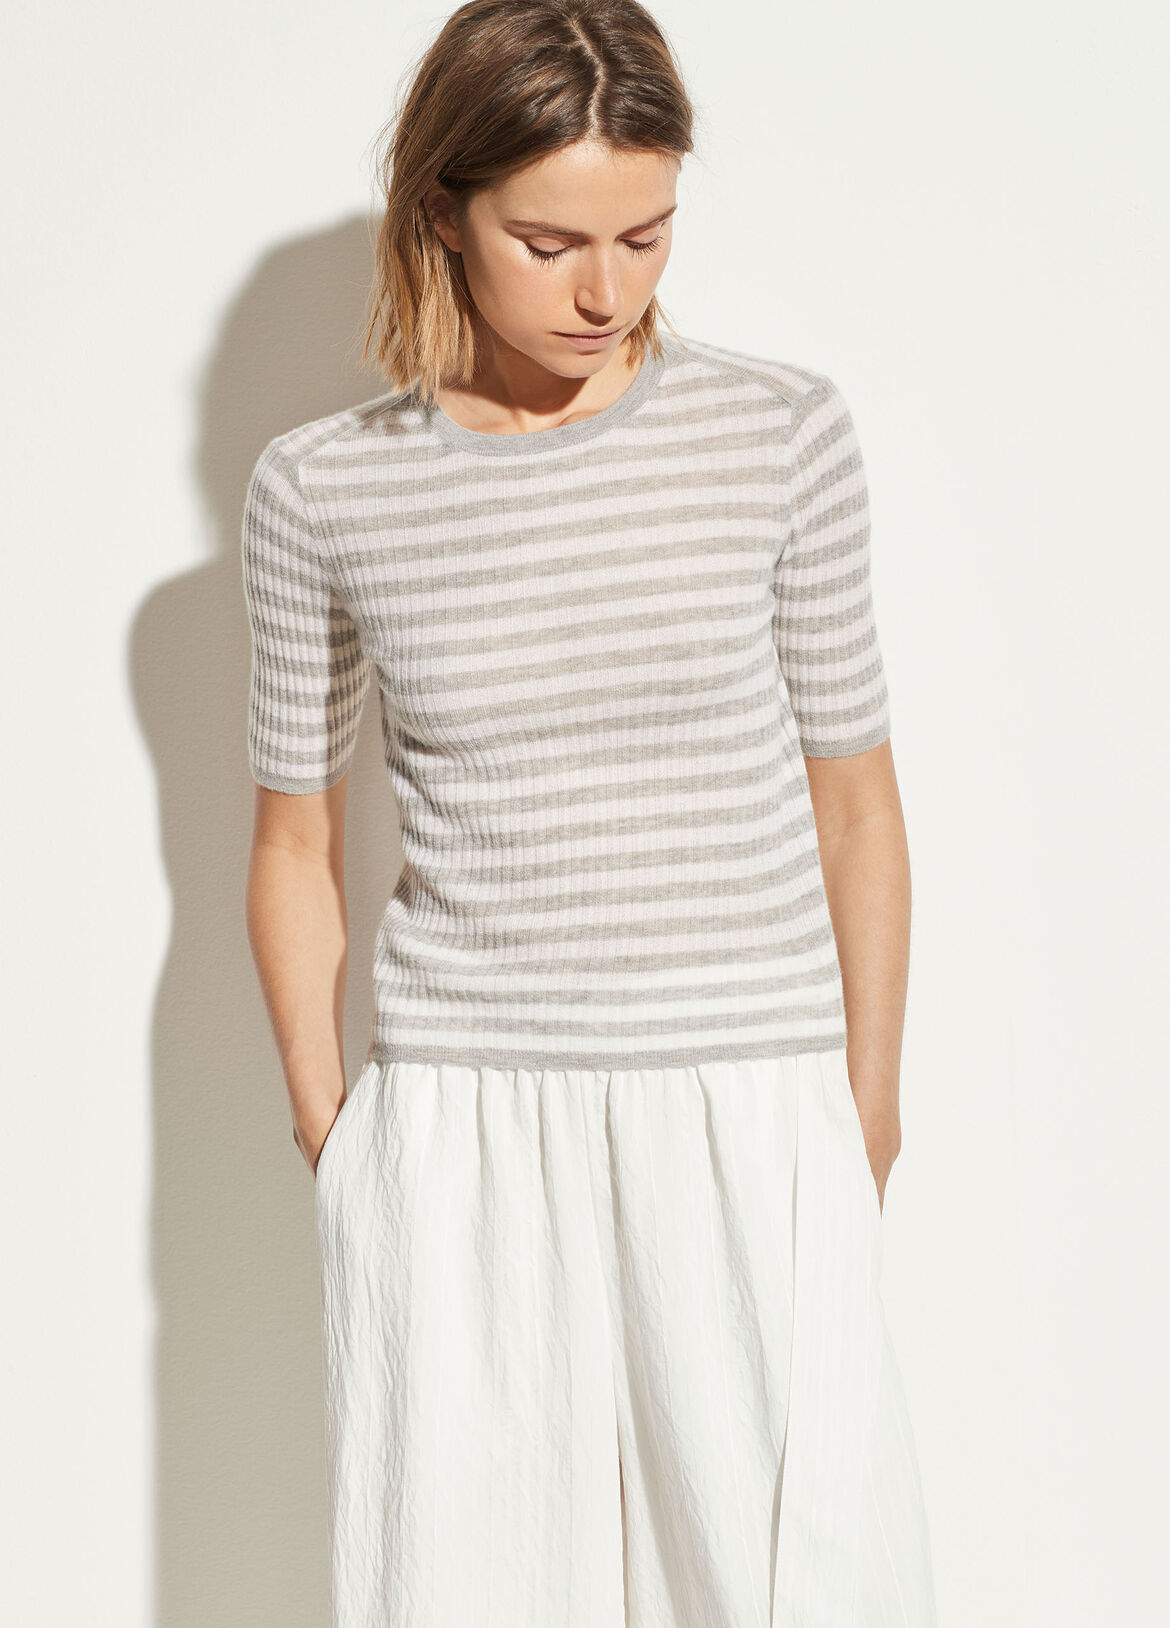 e9234e0c1d5f9c Striped Cashmere Elbow Sleeve Pullover. $265.00. More Colors